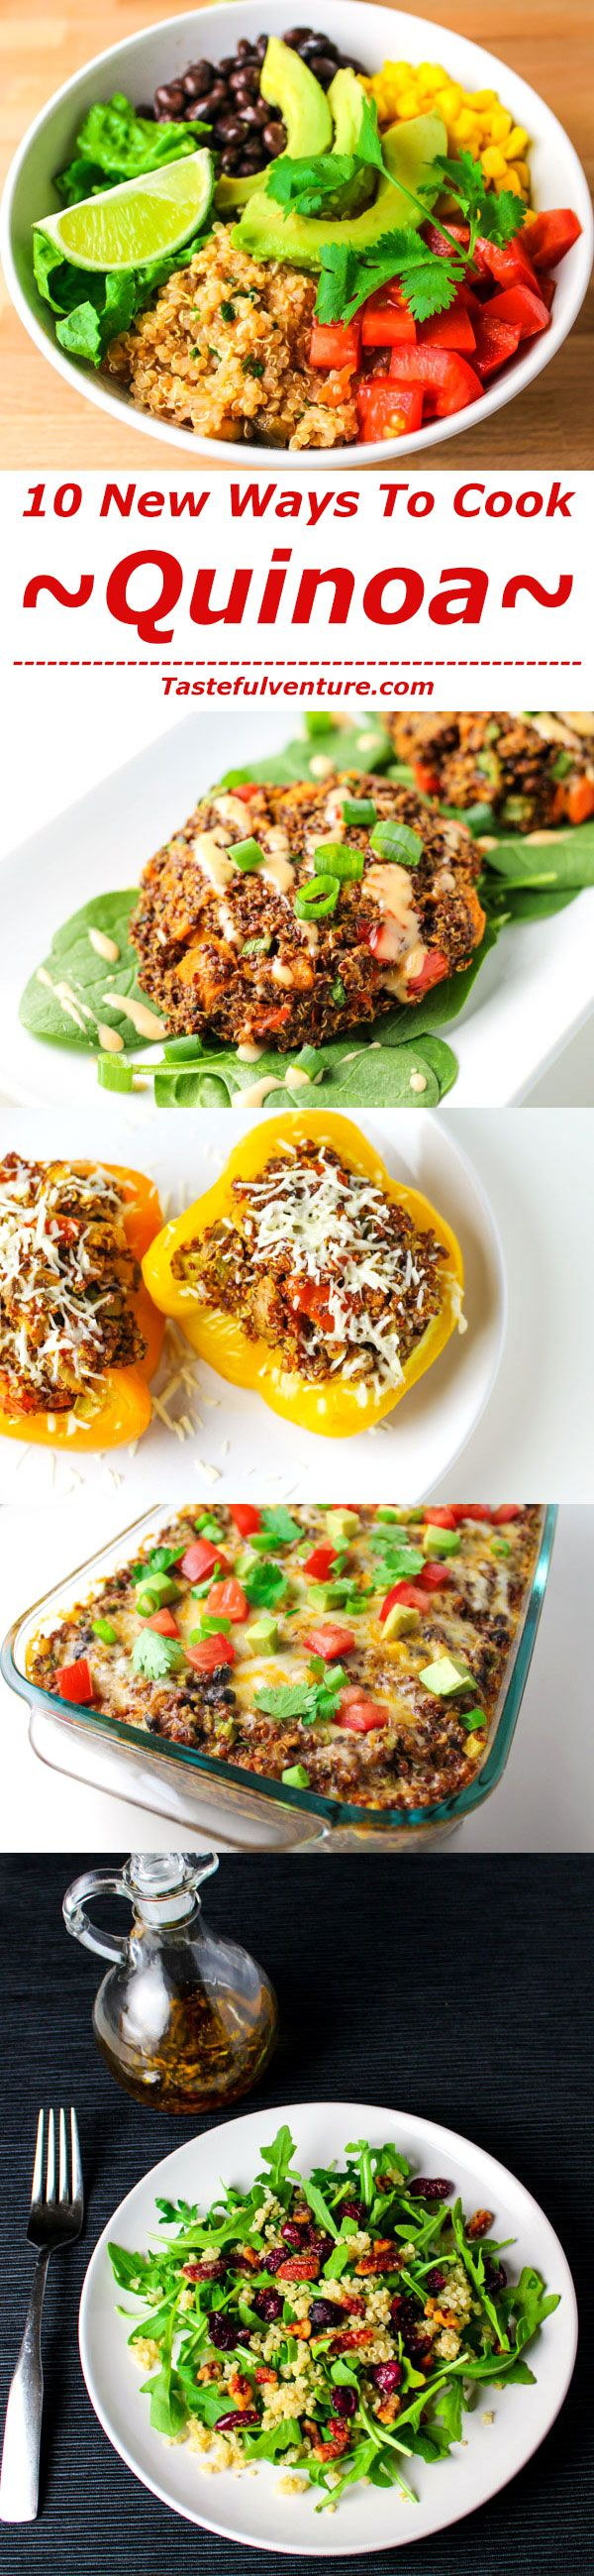 10 New Ways To Cook Quinoa